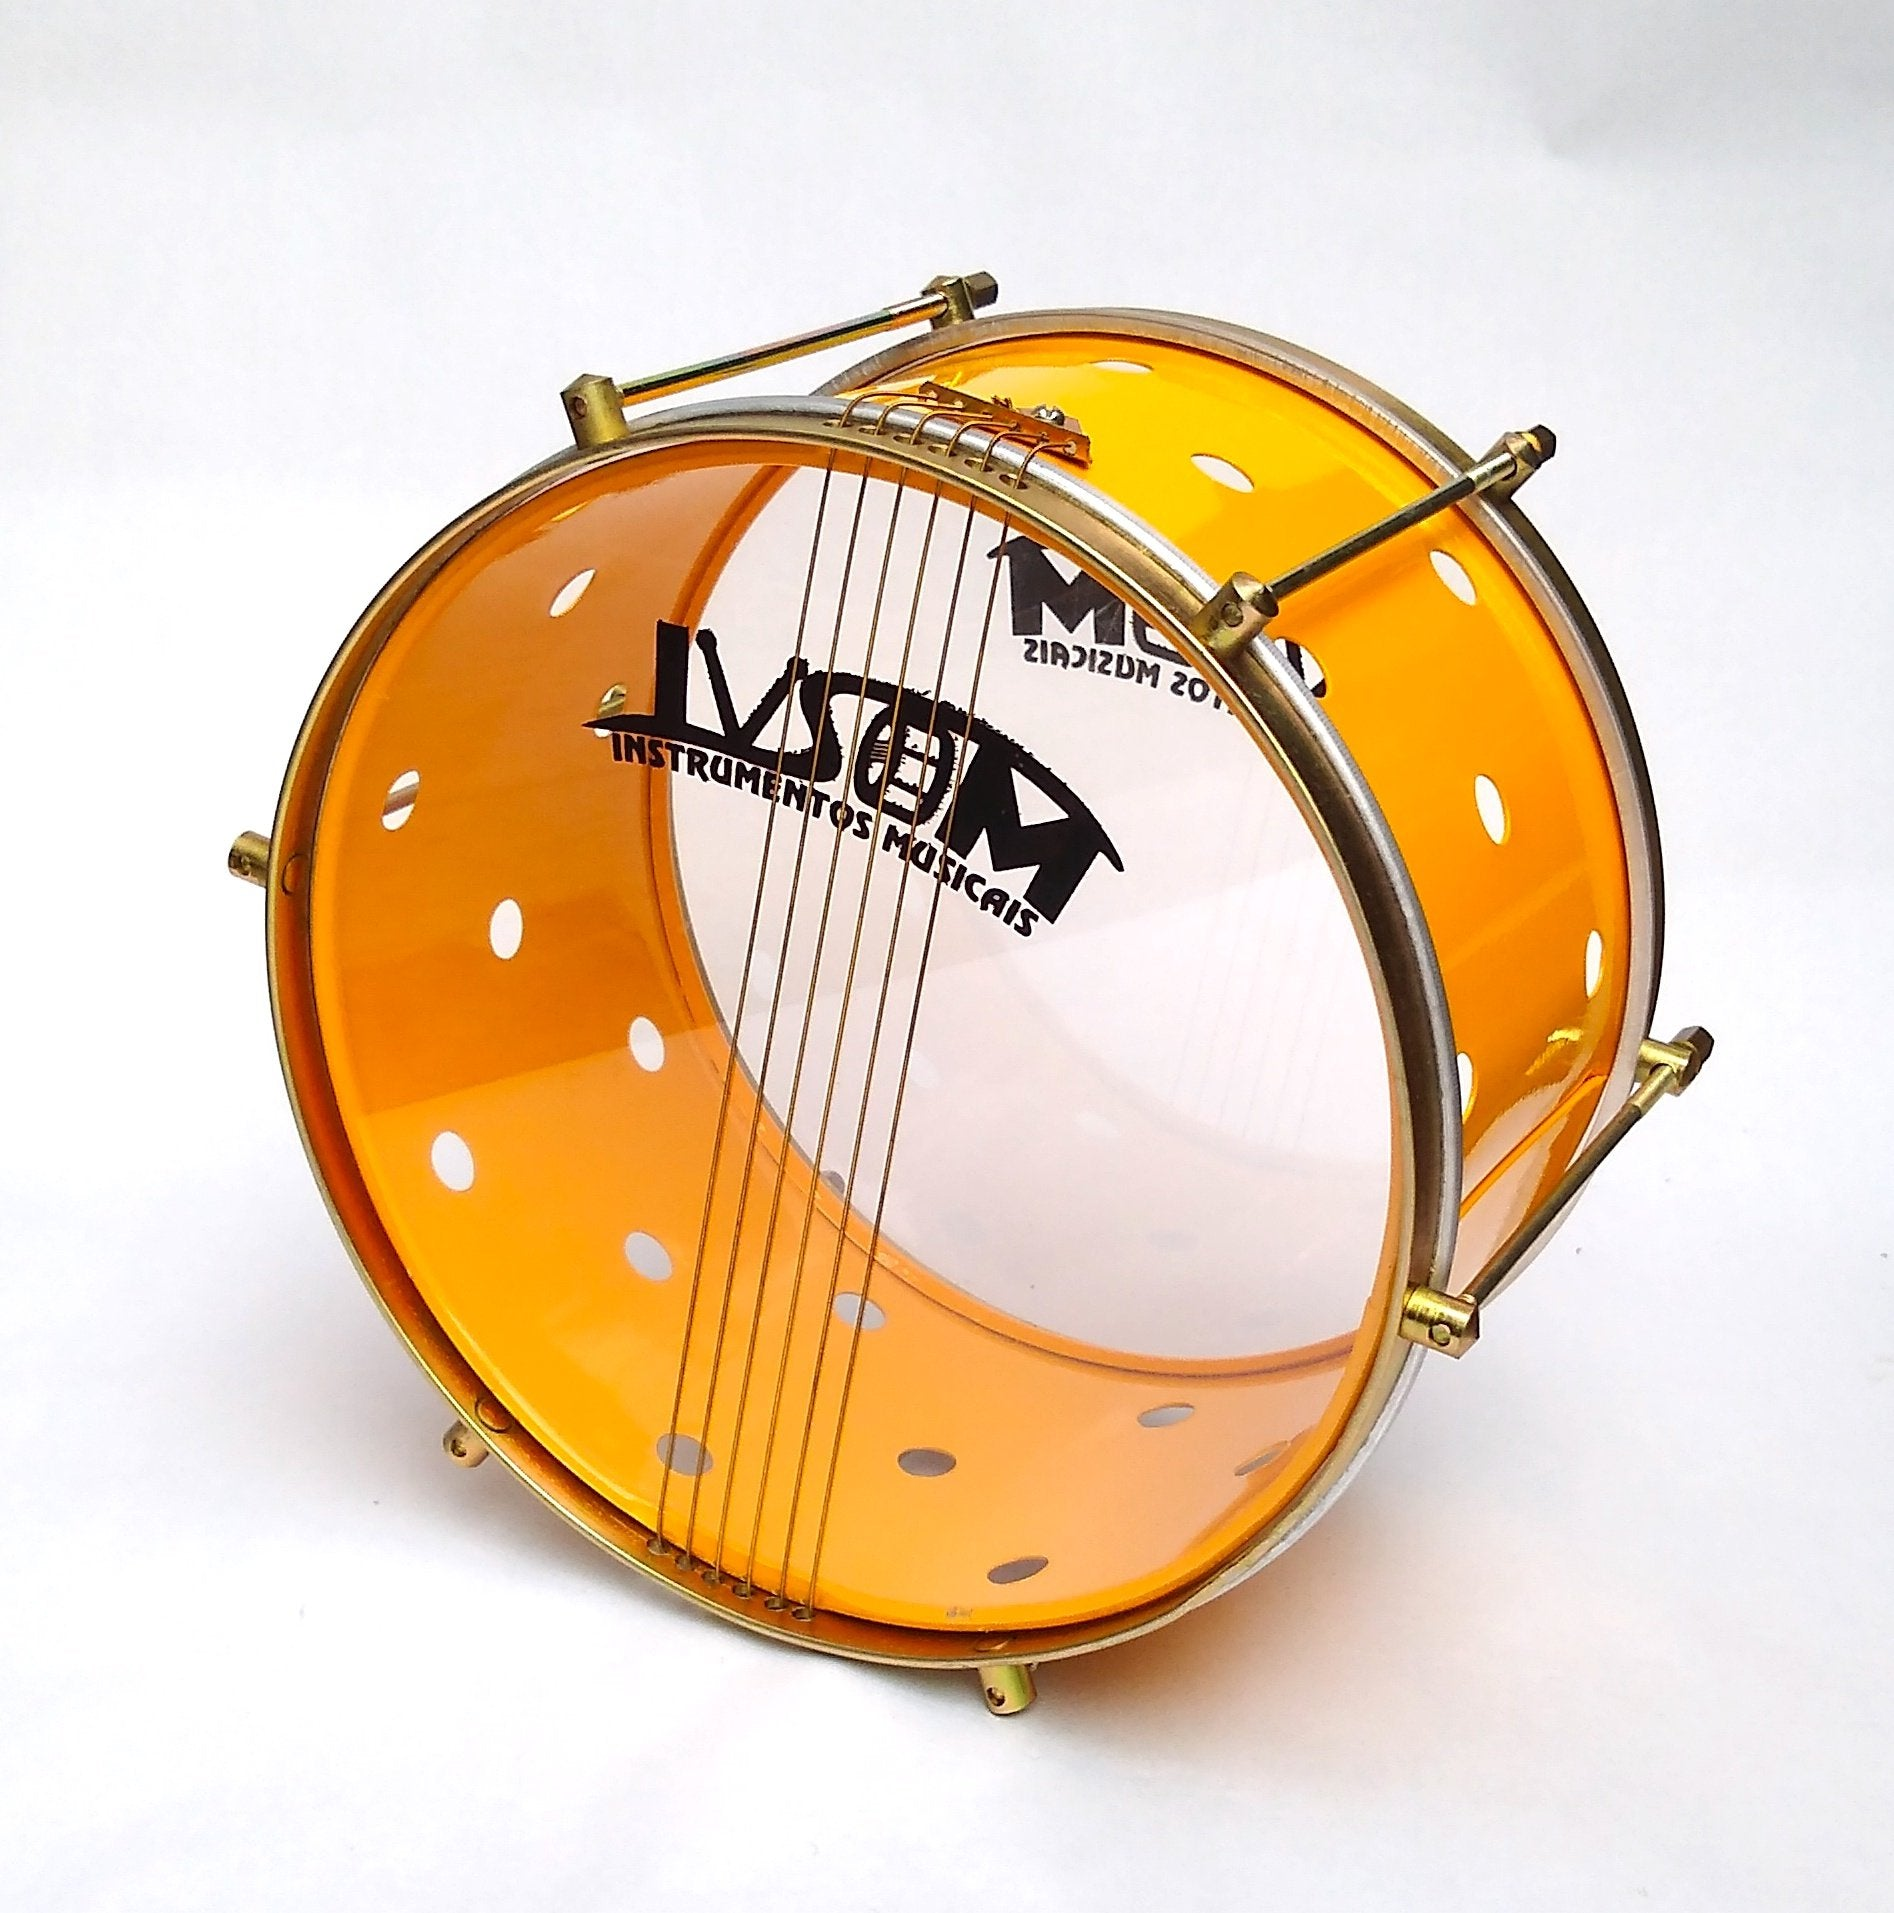 Yellow samba drum with brass colored hardware, six strings, clear drum heads and a yellow shell. The yellow shell has small holes drilled into it.